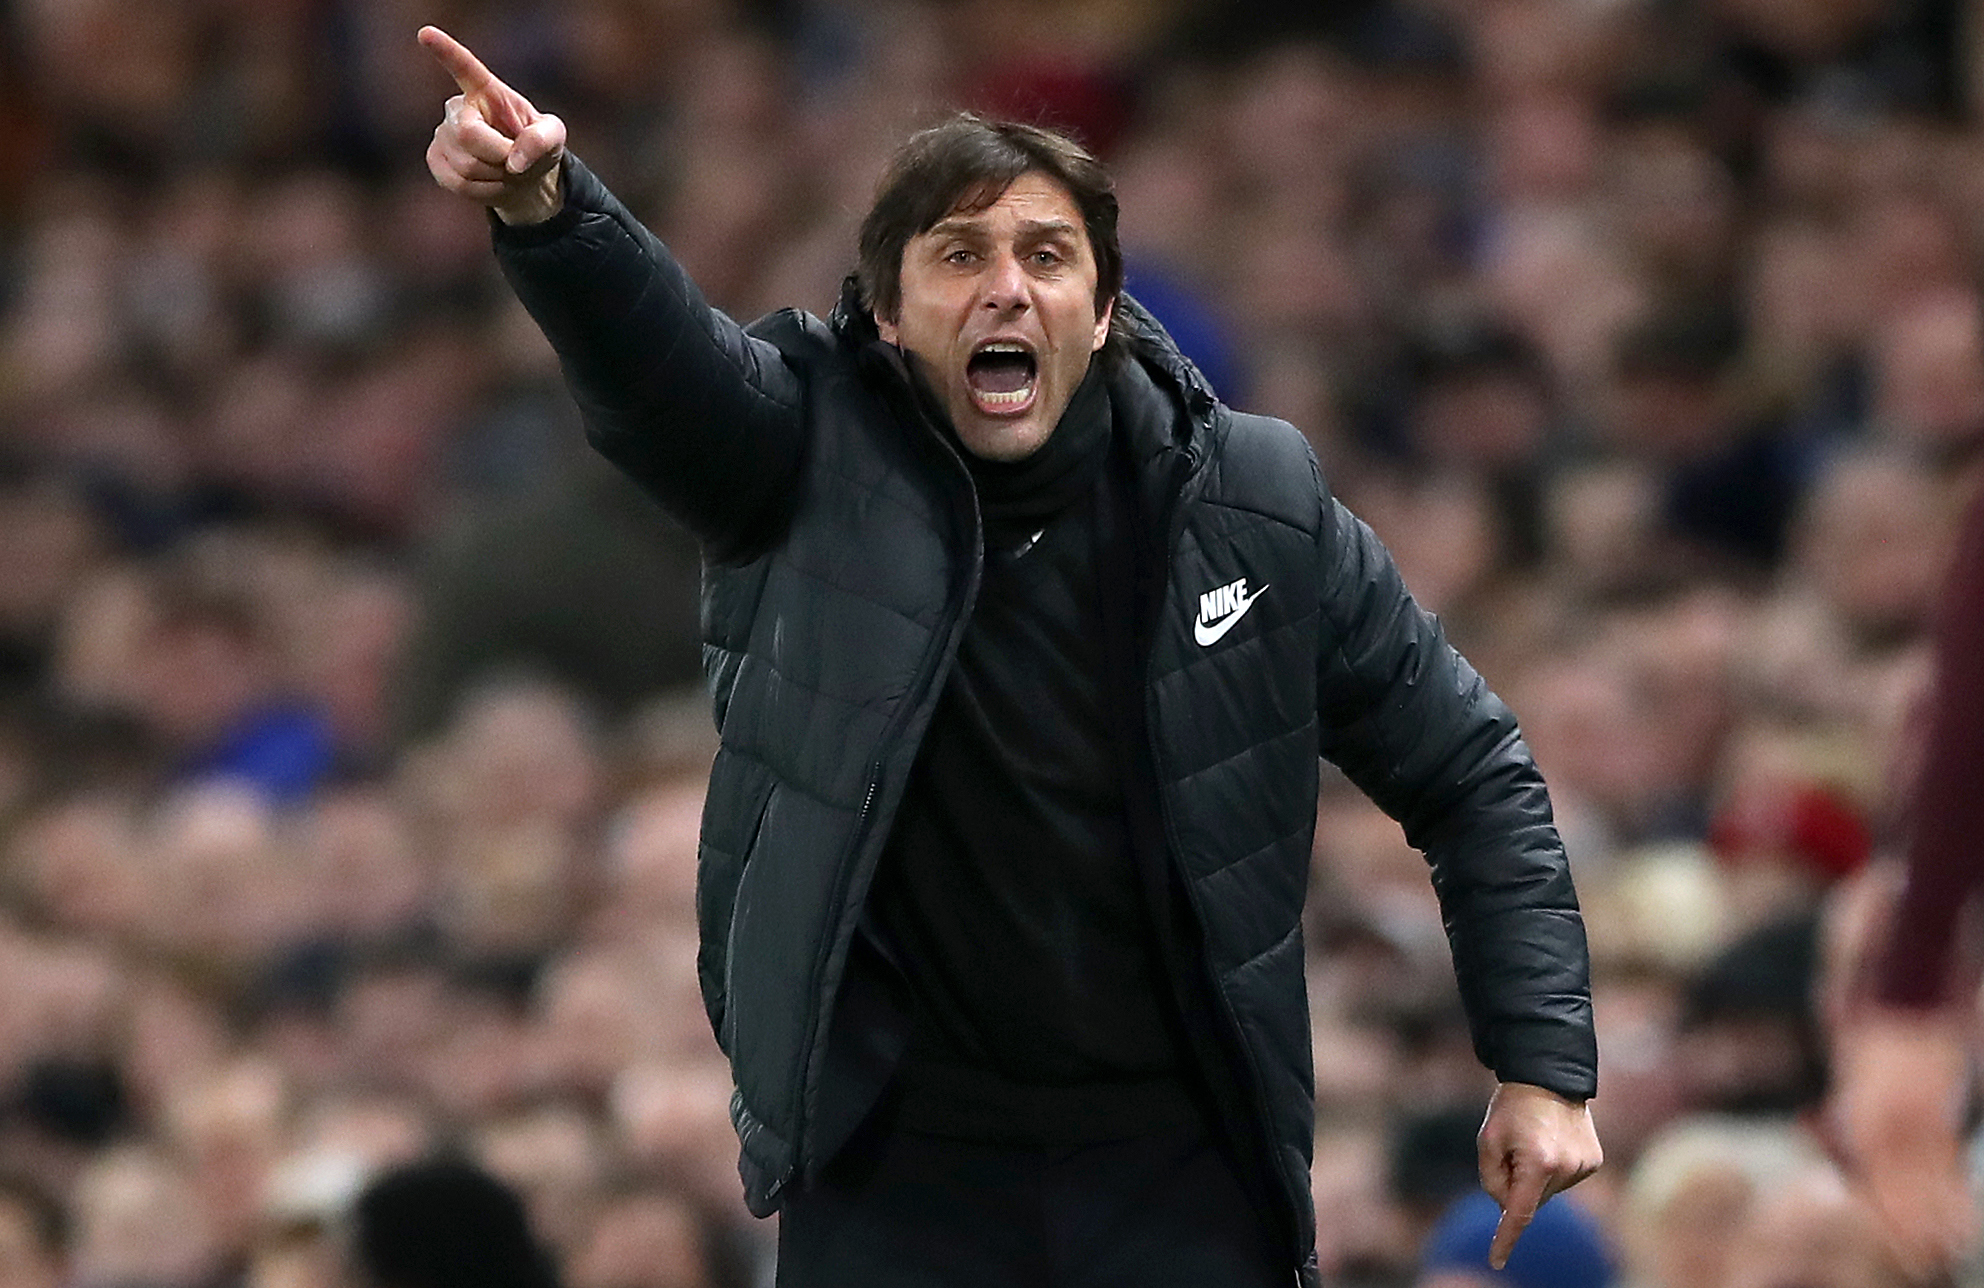 Former Chelsea boss Antonio Conte dismisses Roma move